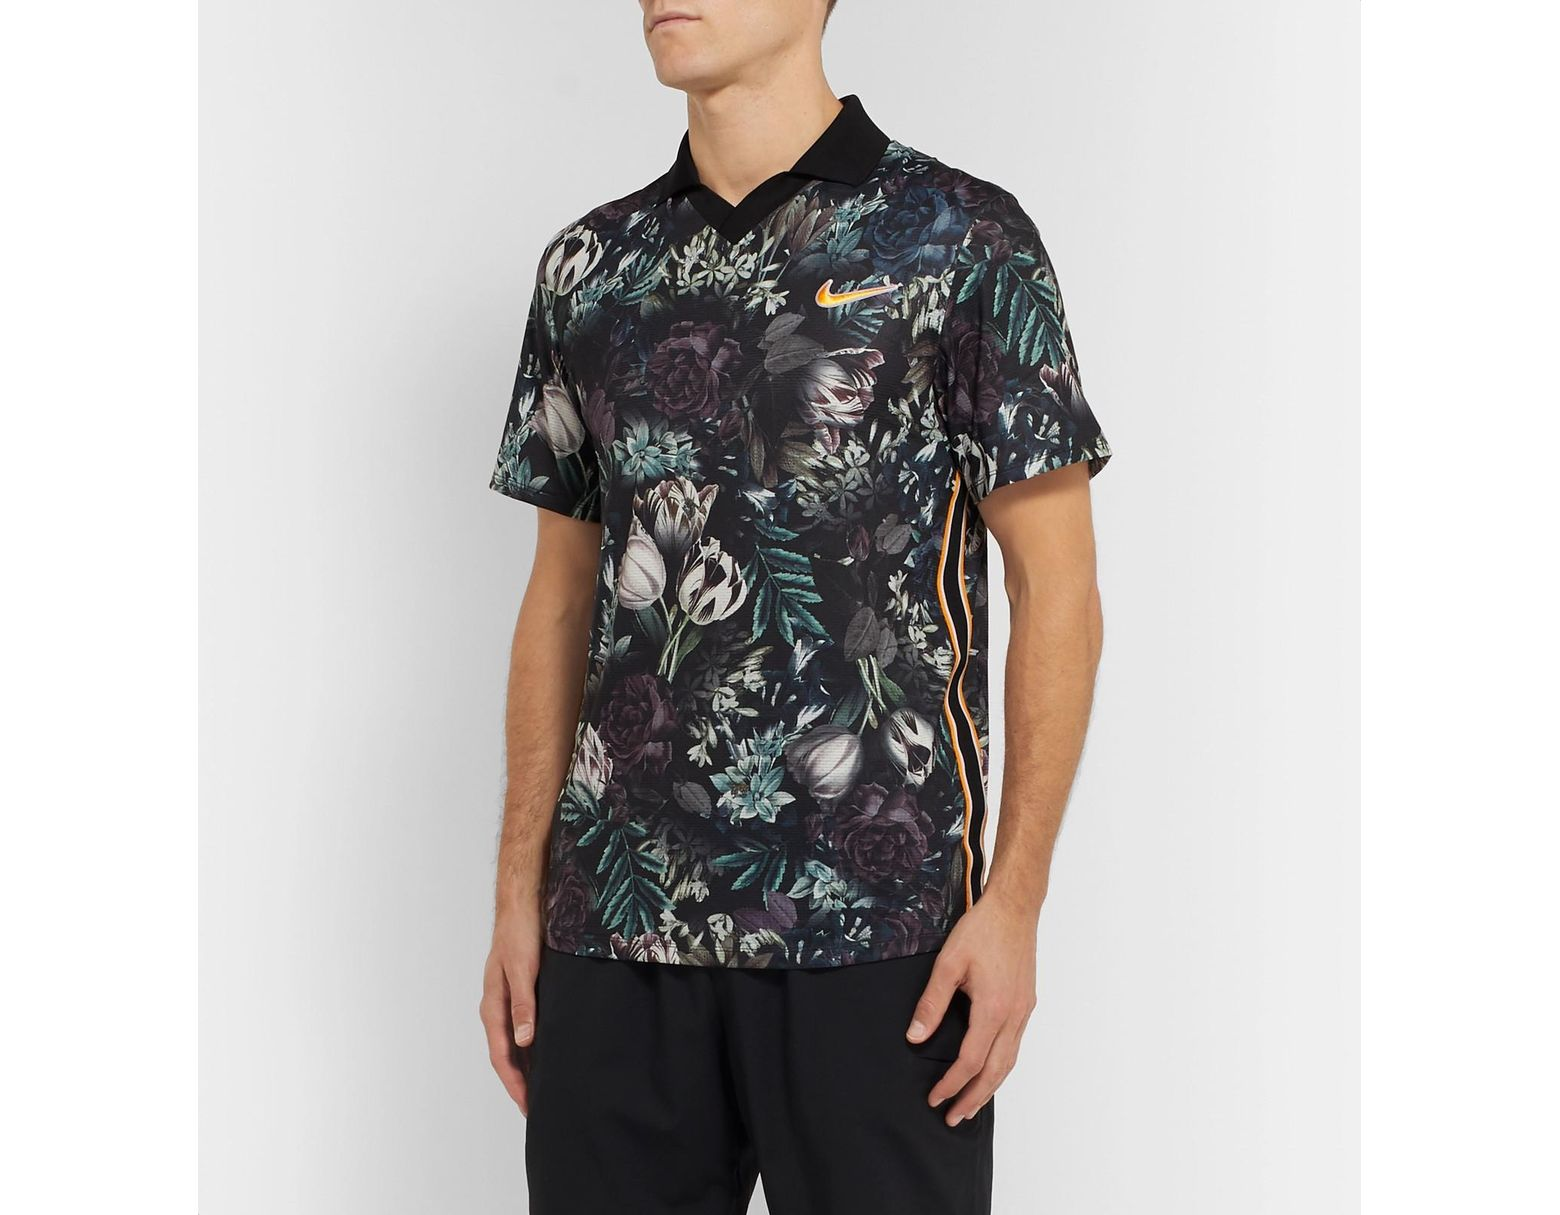 7176c8917 Nike Nikecourt Slam Striped Floral-print Dri-fit Tennis Polo Shirt in Black  for Men - Lyst